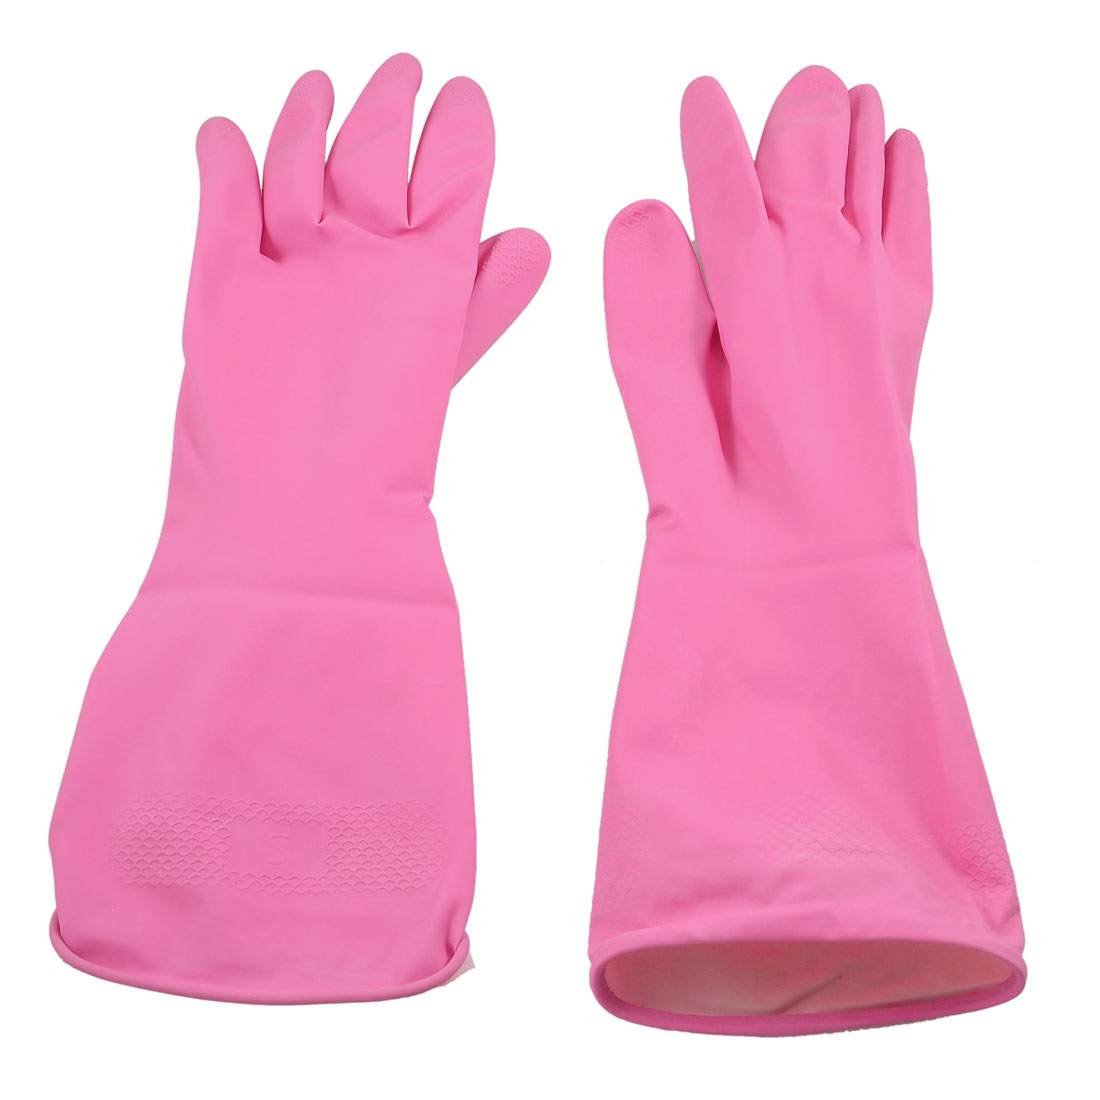 Unique Bargains Household Home Assistant Antislip Clean Wash Latex Gloves 2 Psc